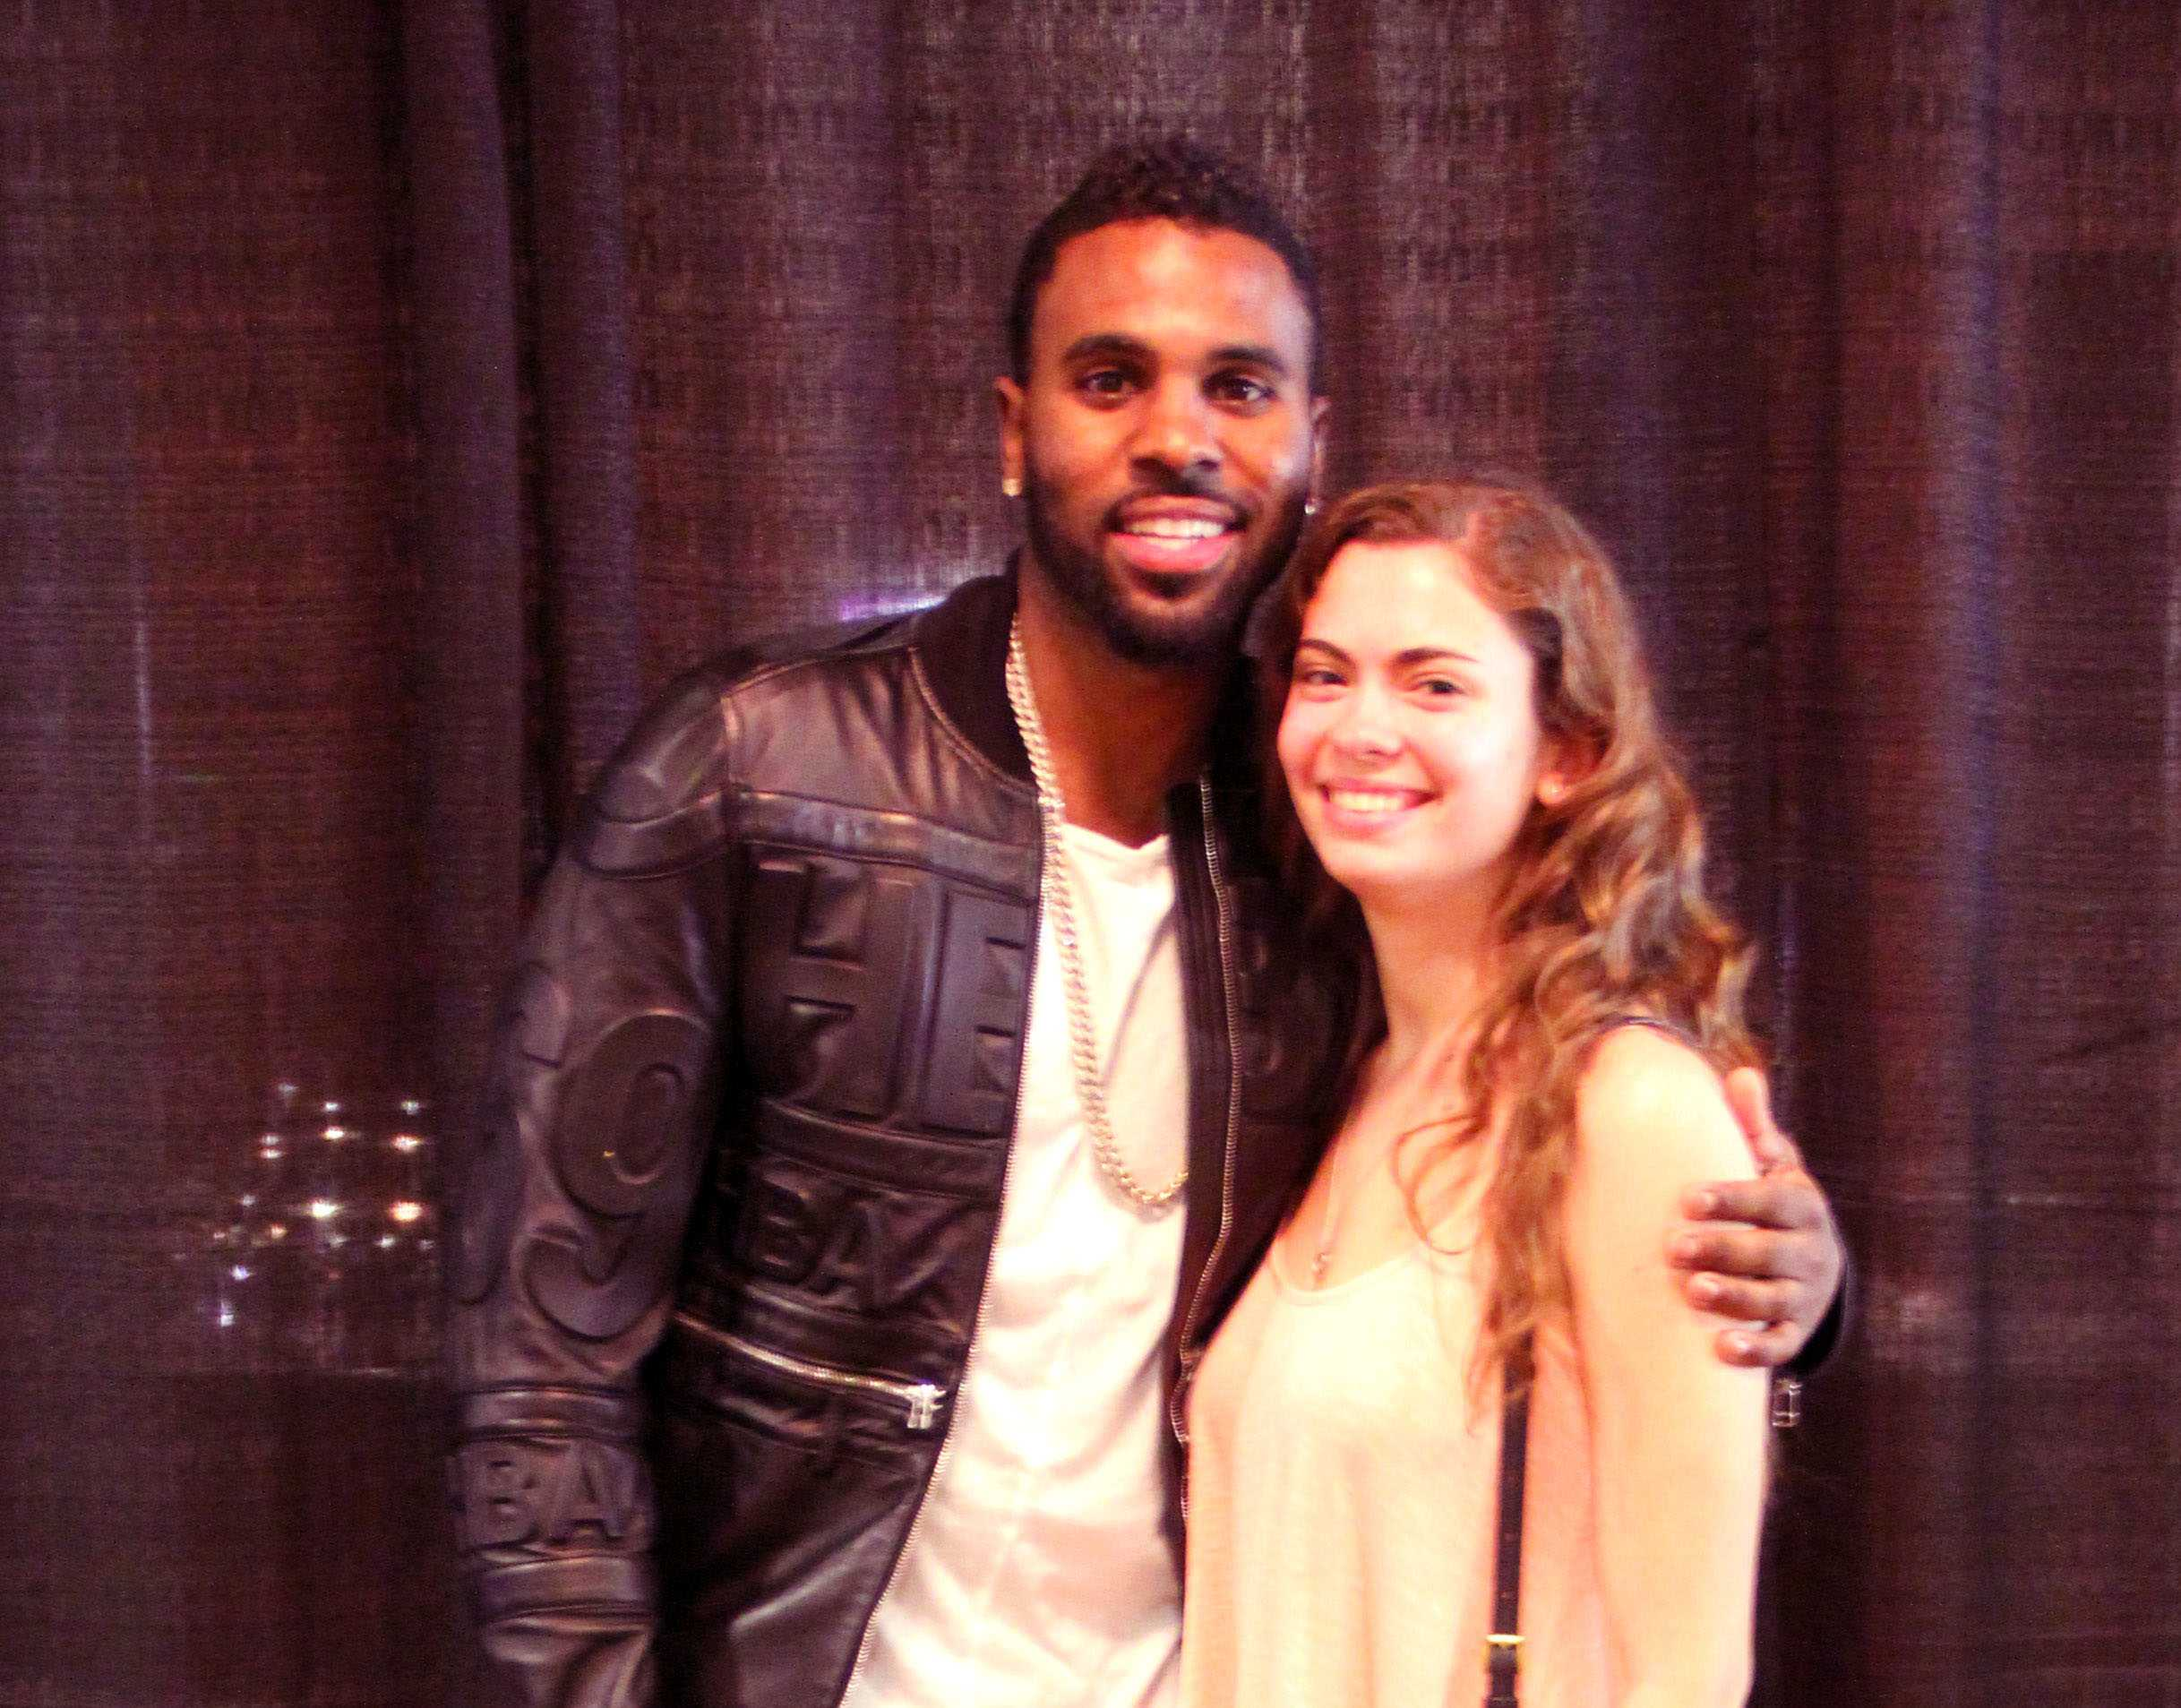 TMA interviews Jason Derulo's hard twerking fan